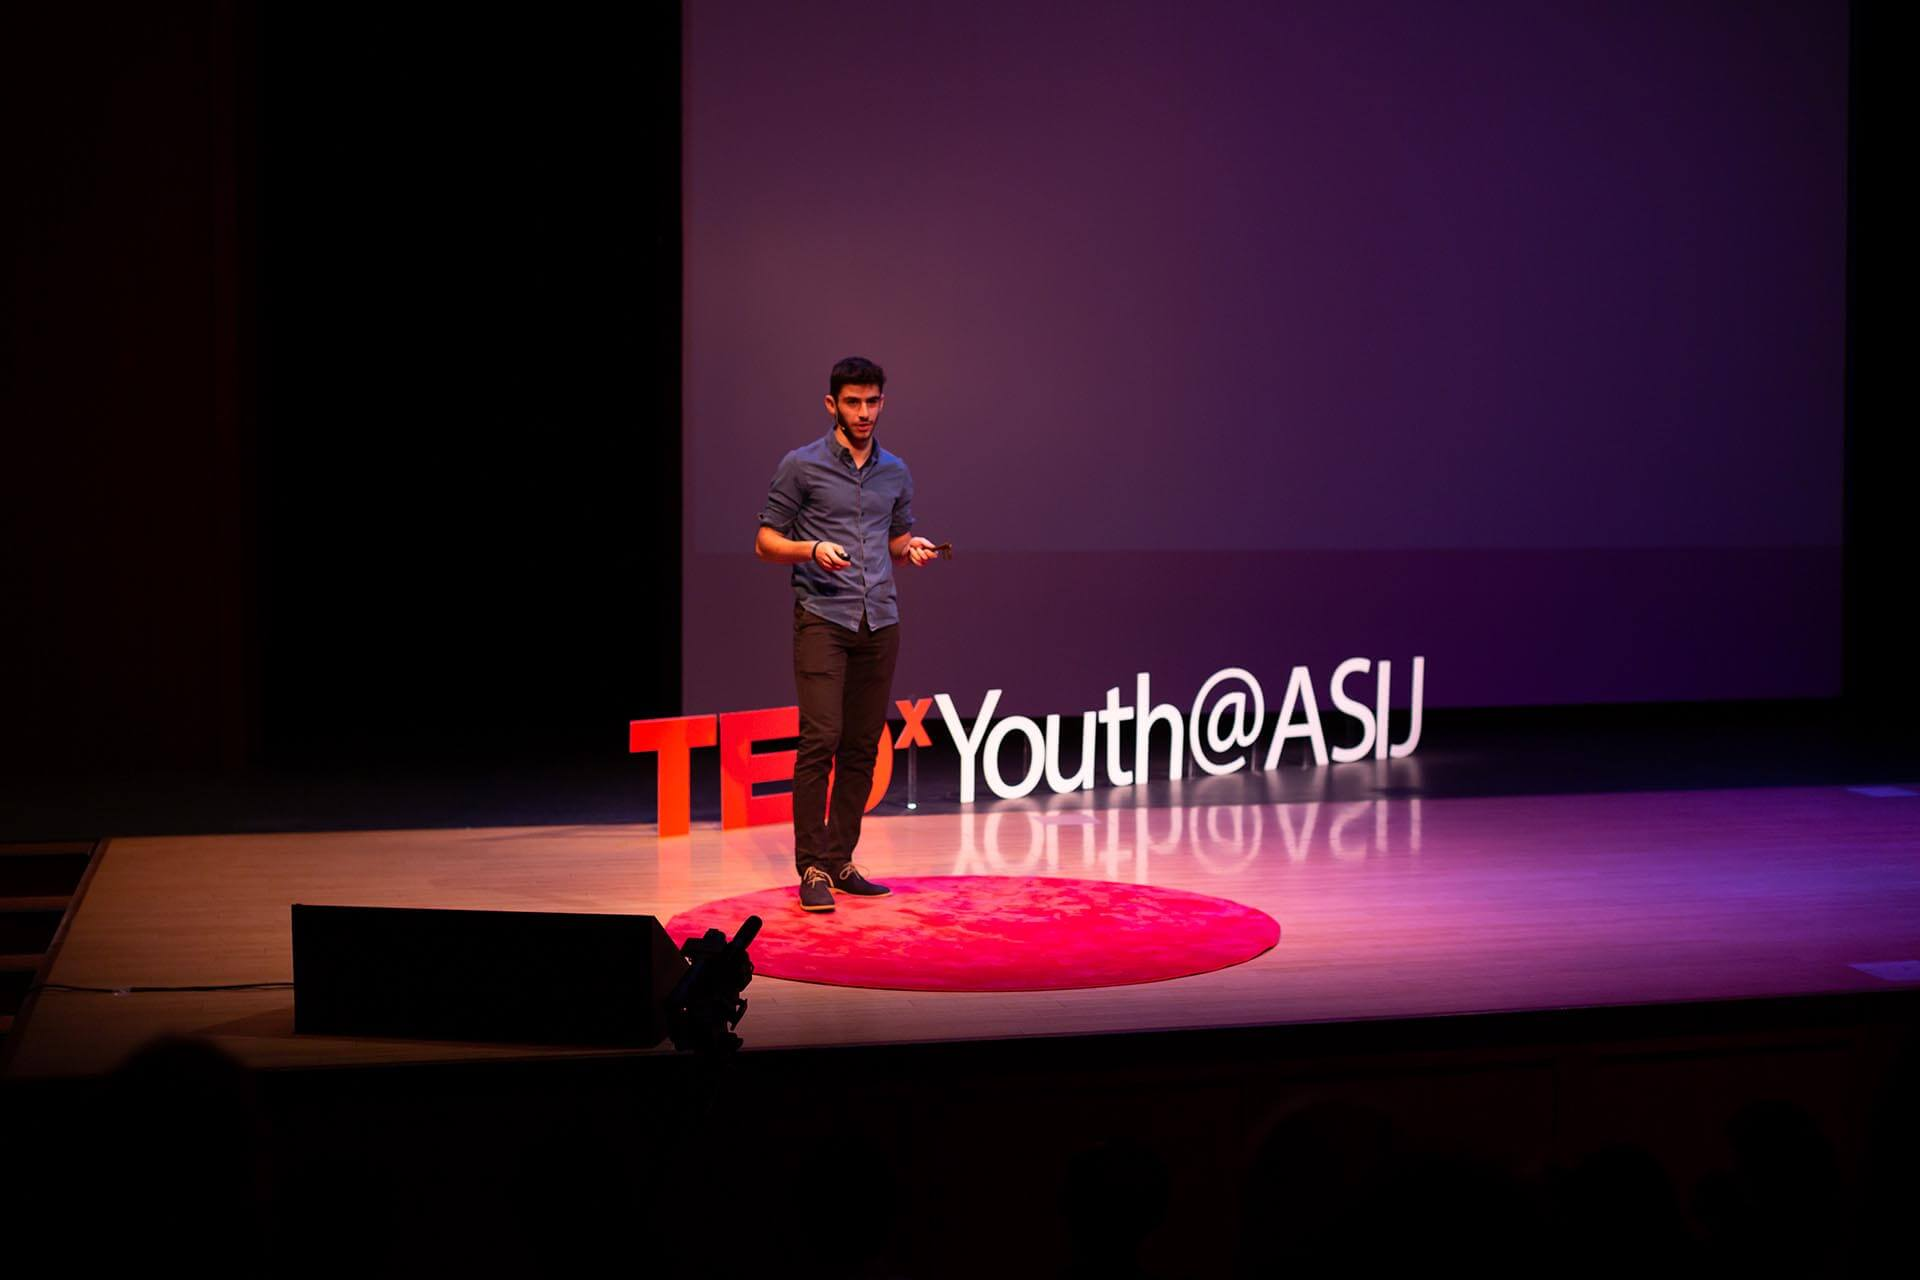 A High School Student Presents at TedX Youth